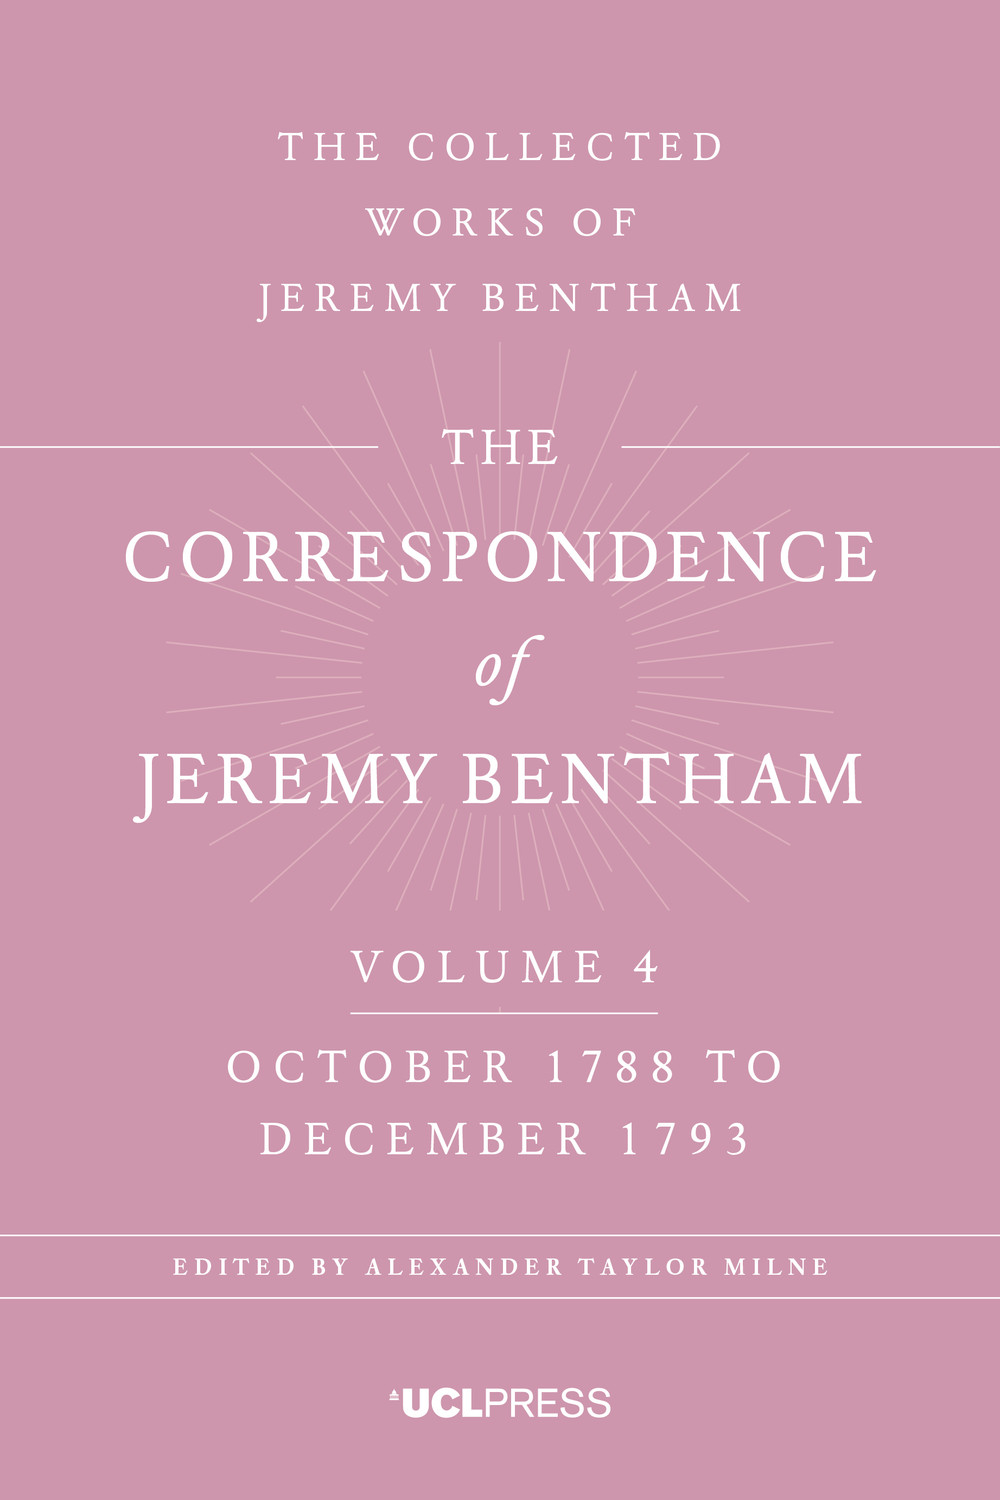 The Correspondence of Jeremy Bentham, Volume 4